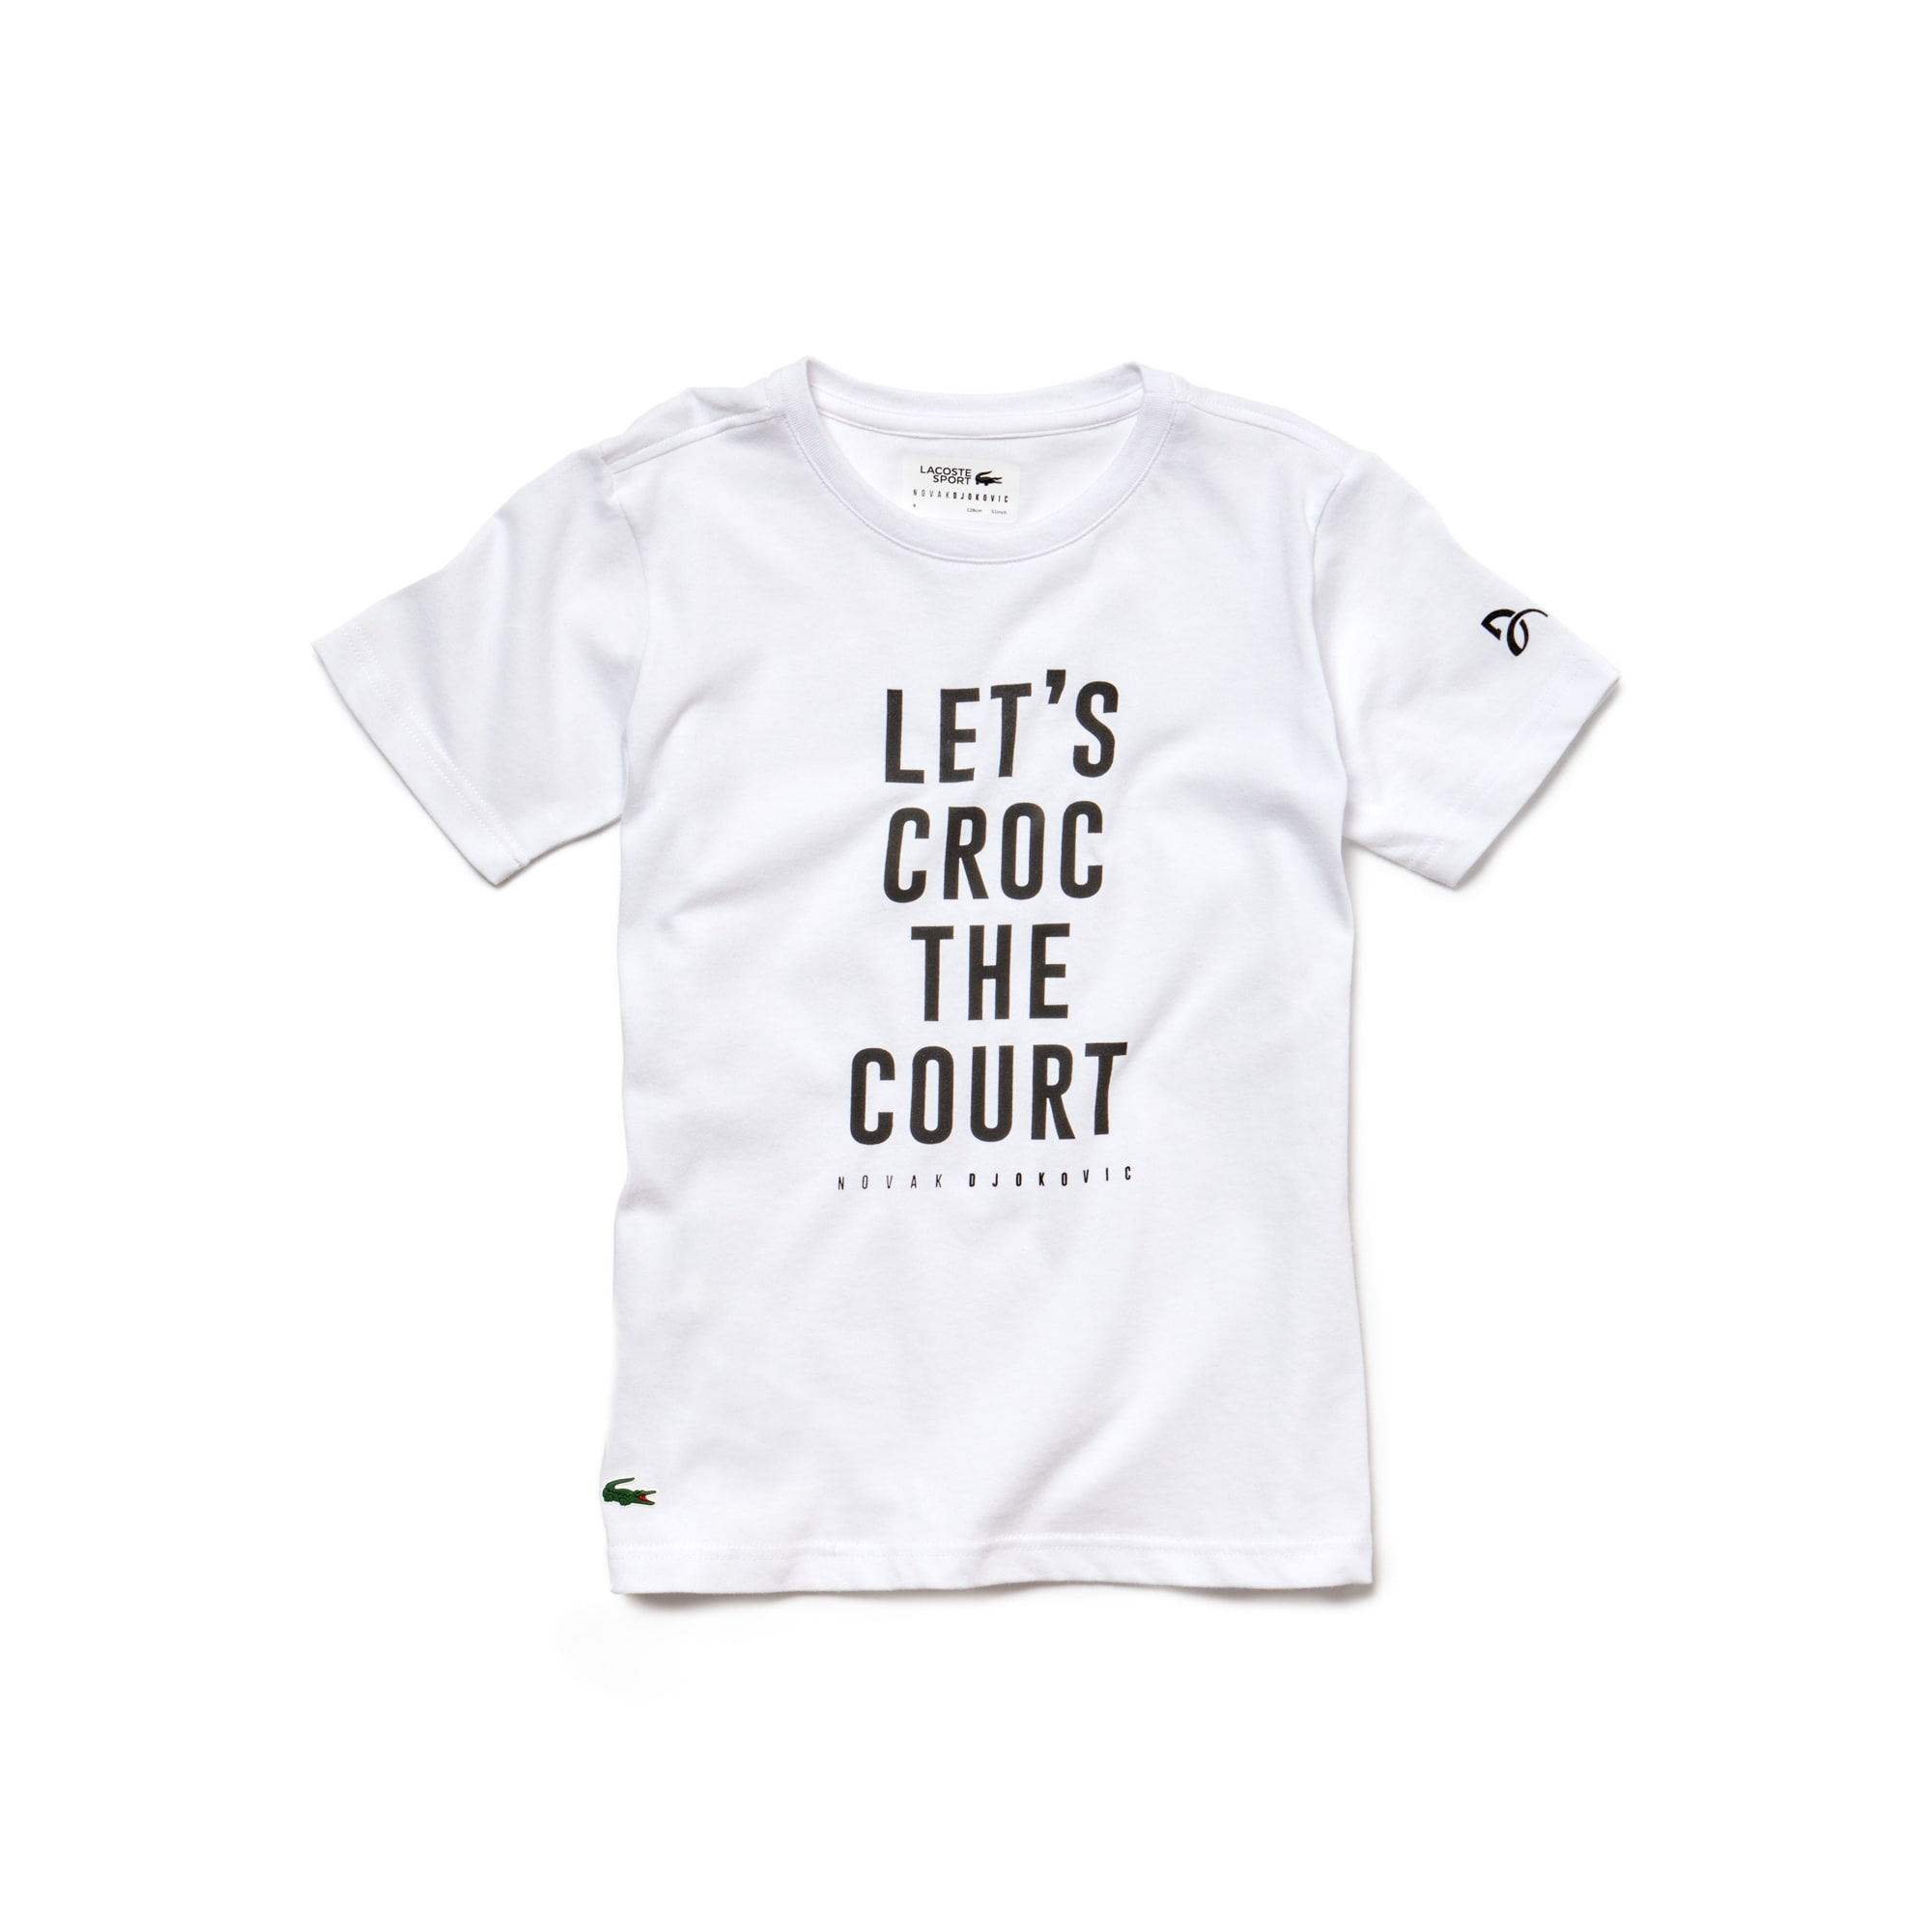 T-shirt Garçon Lacoste SPORT Collection Novak Djokovic Support With Style - Off Court en jersey technique avec marquage